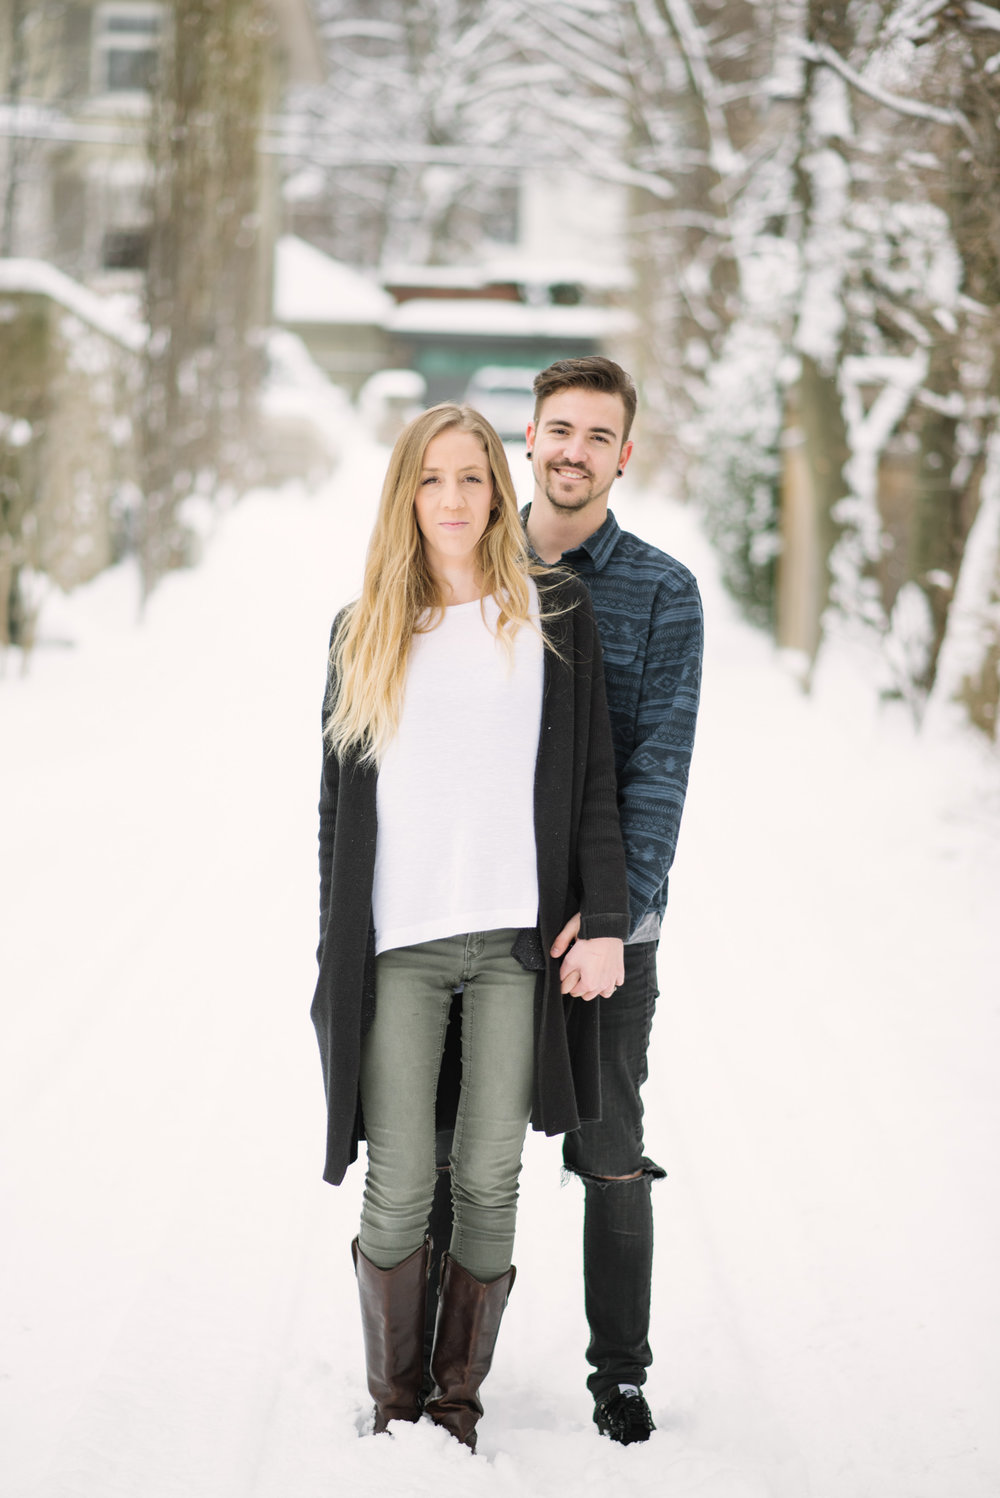 Jess & Tim | Winter Engagement Session